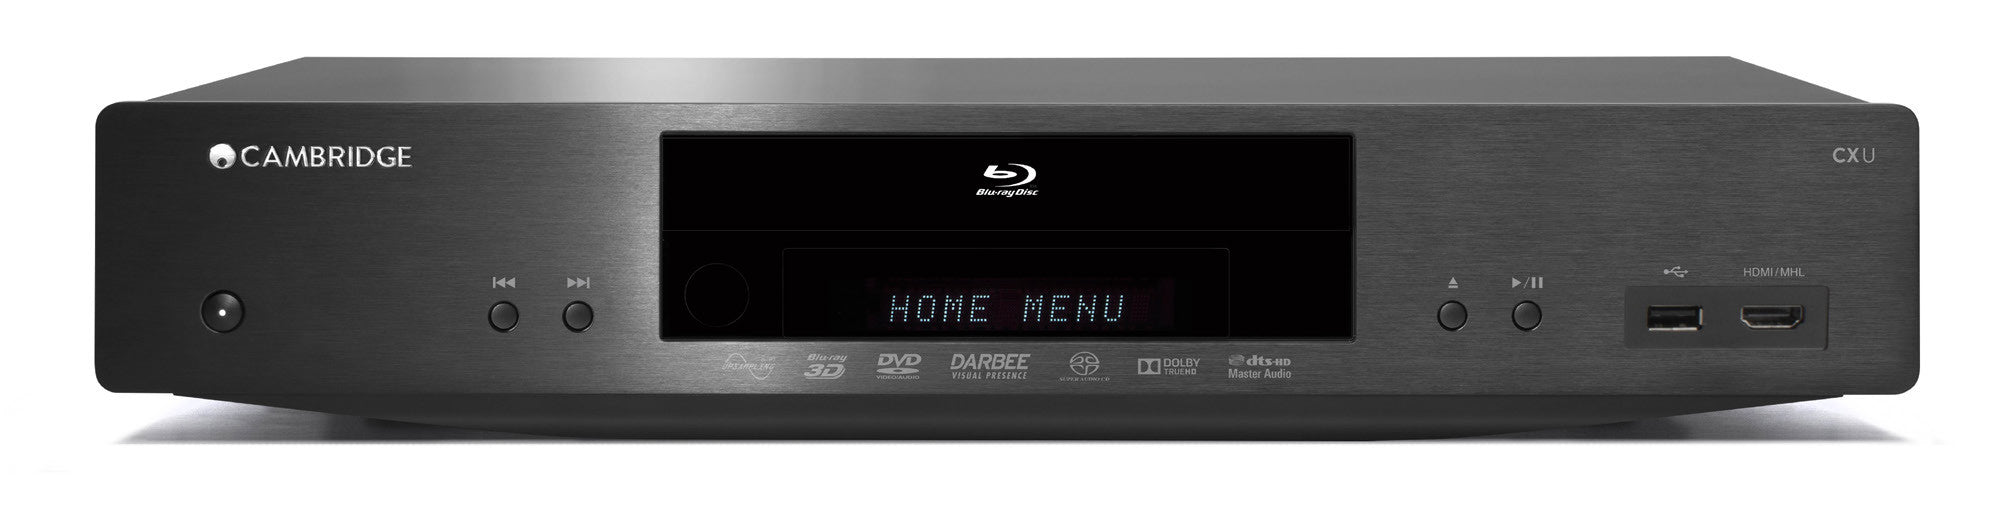 CXU 3D Universal Blue-ray Player